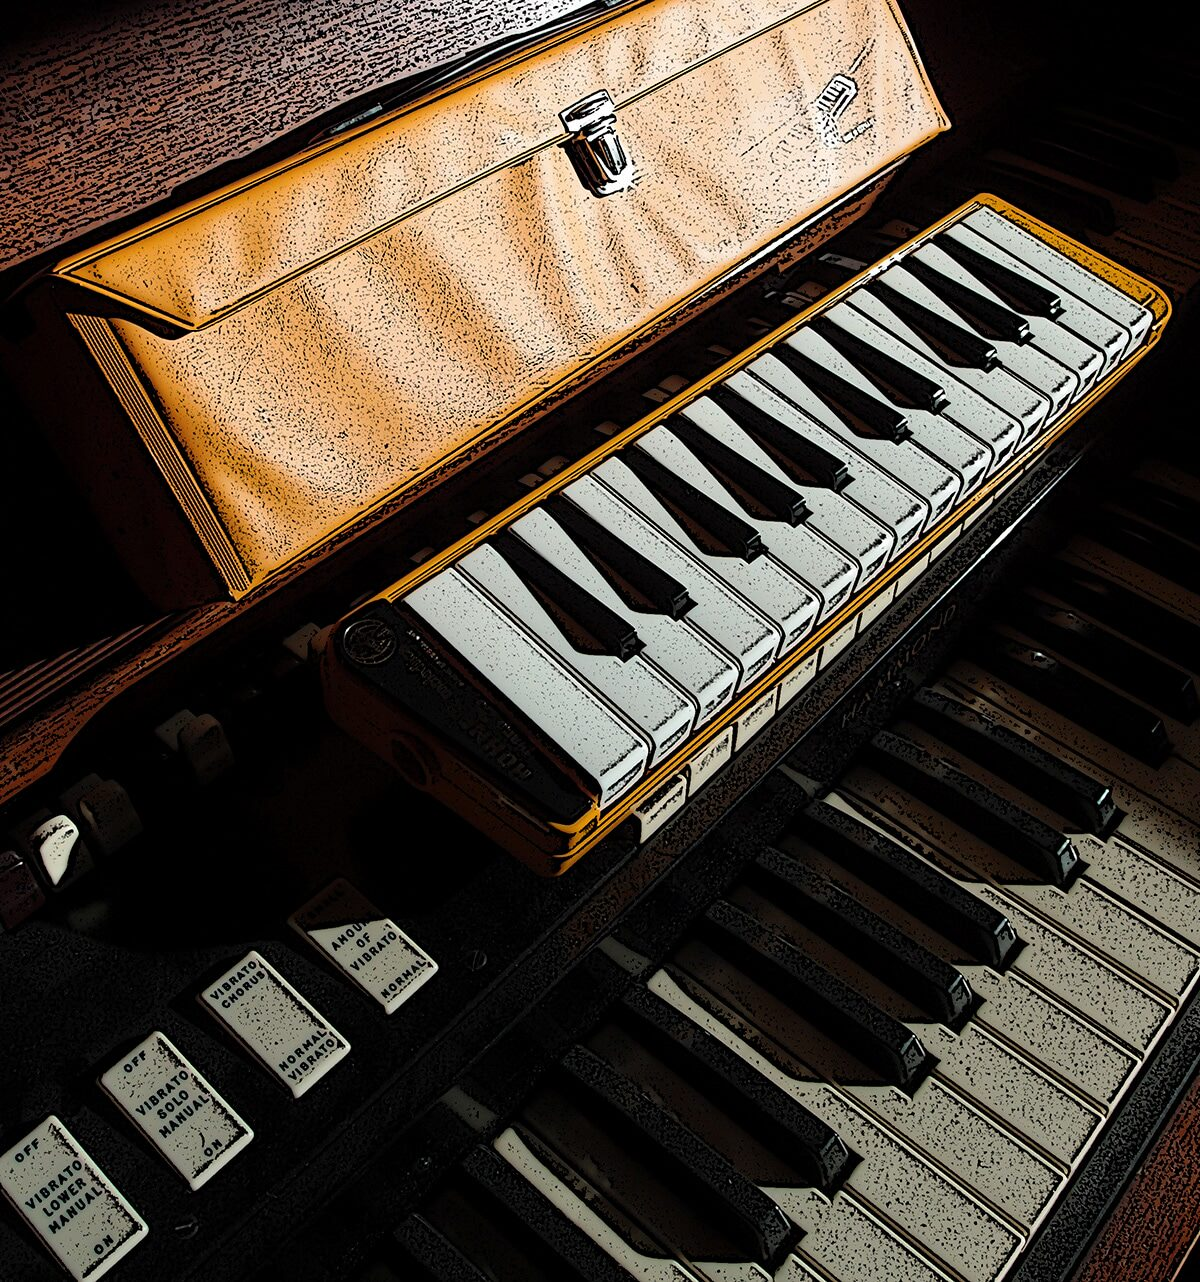 Yellow Melodica and Hammond Organ